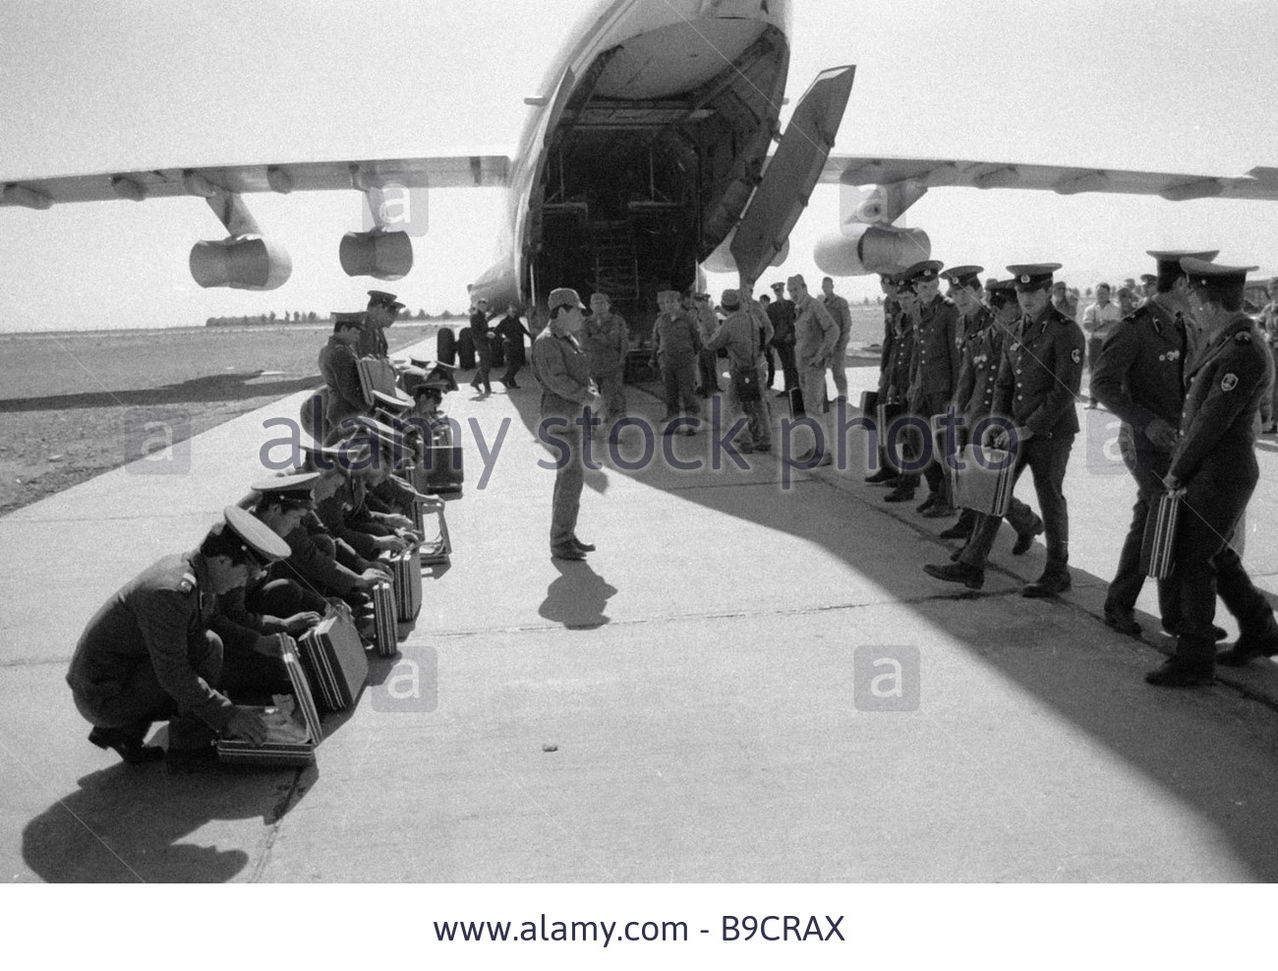 Soviet Afghanistan war - Page 5 Demobbed_soviet_soldiers_getting_ready_to_fly_ho